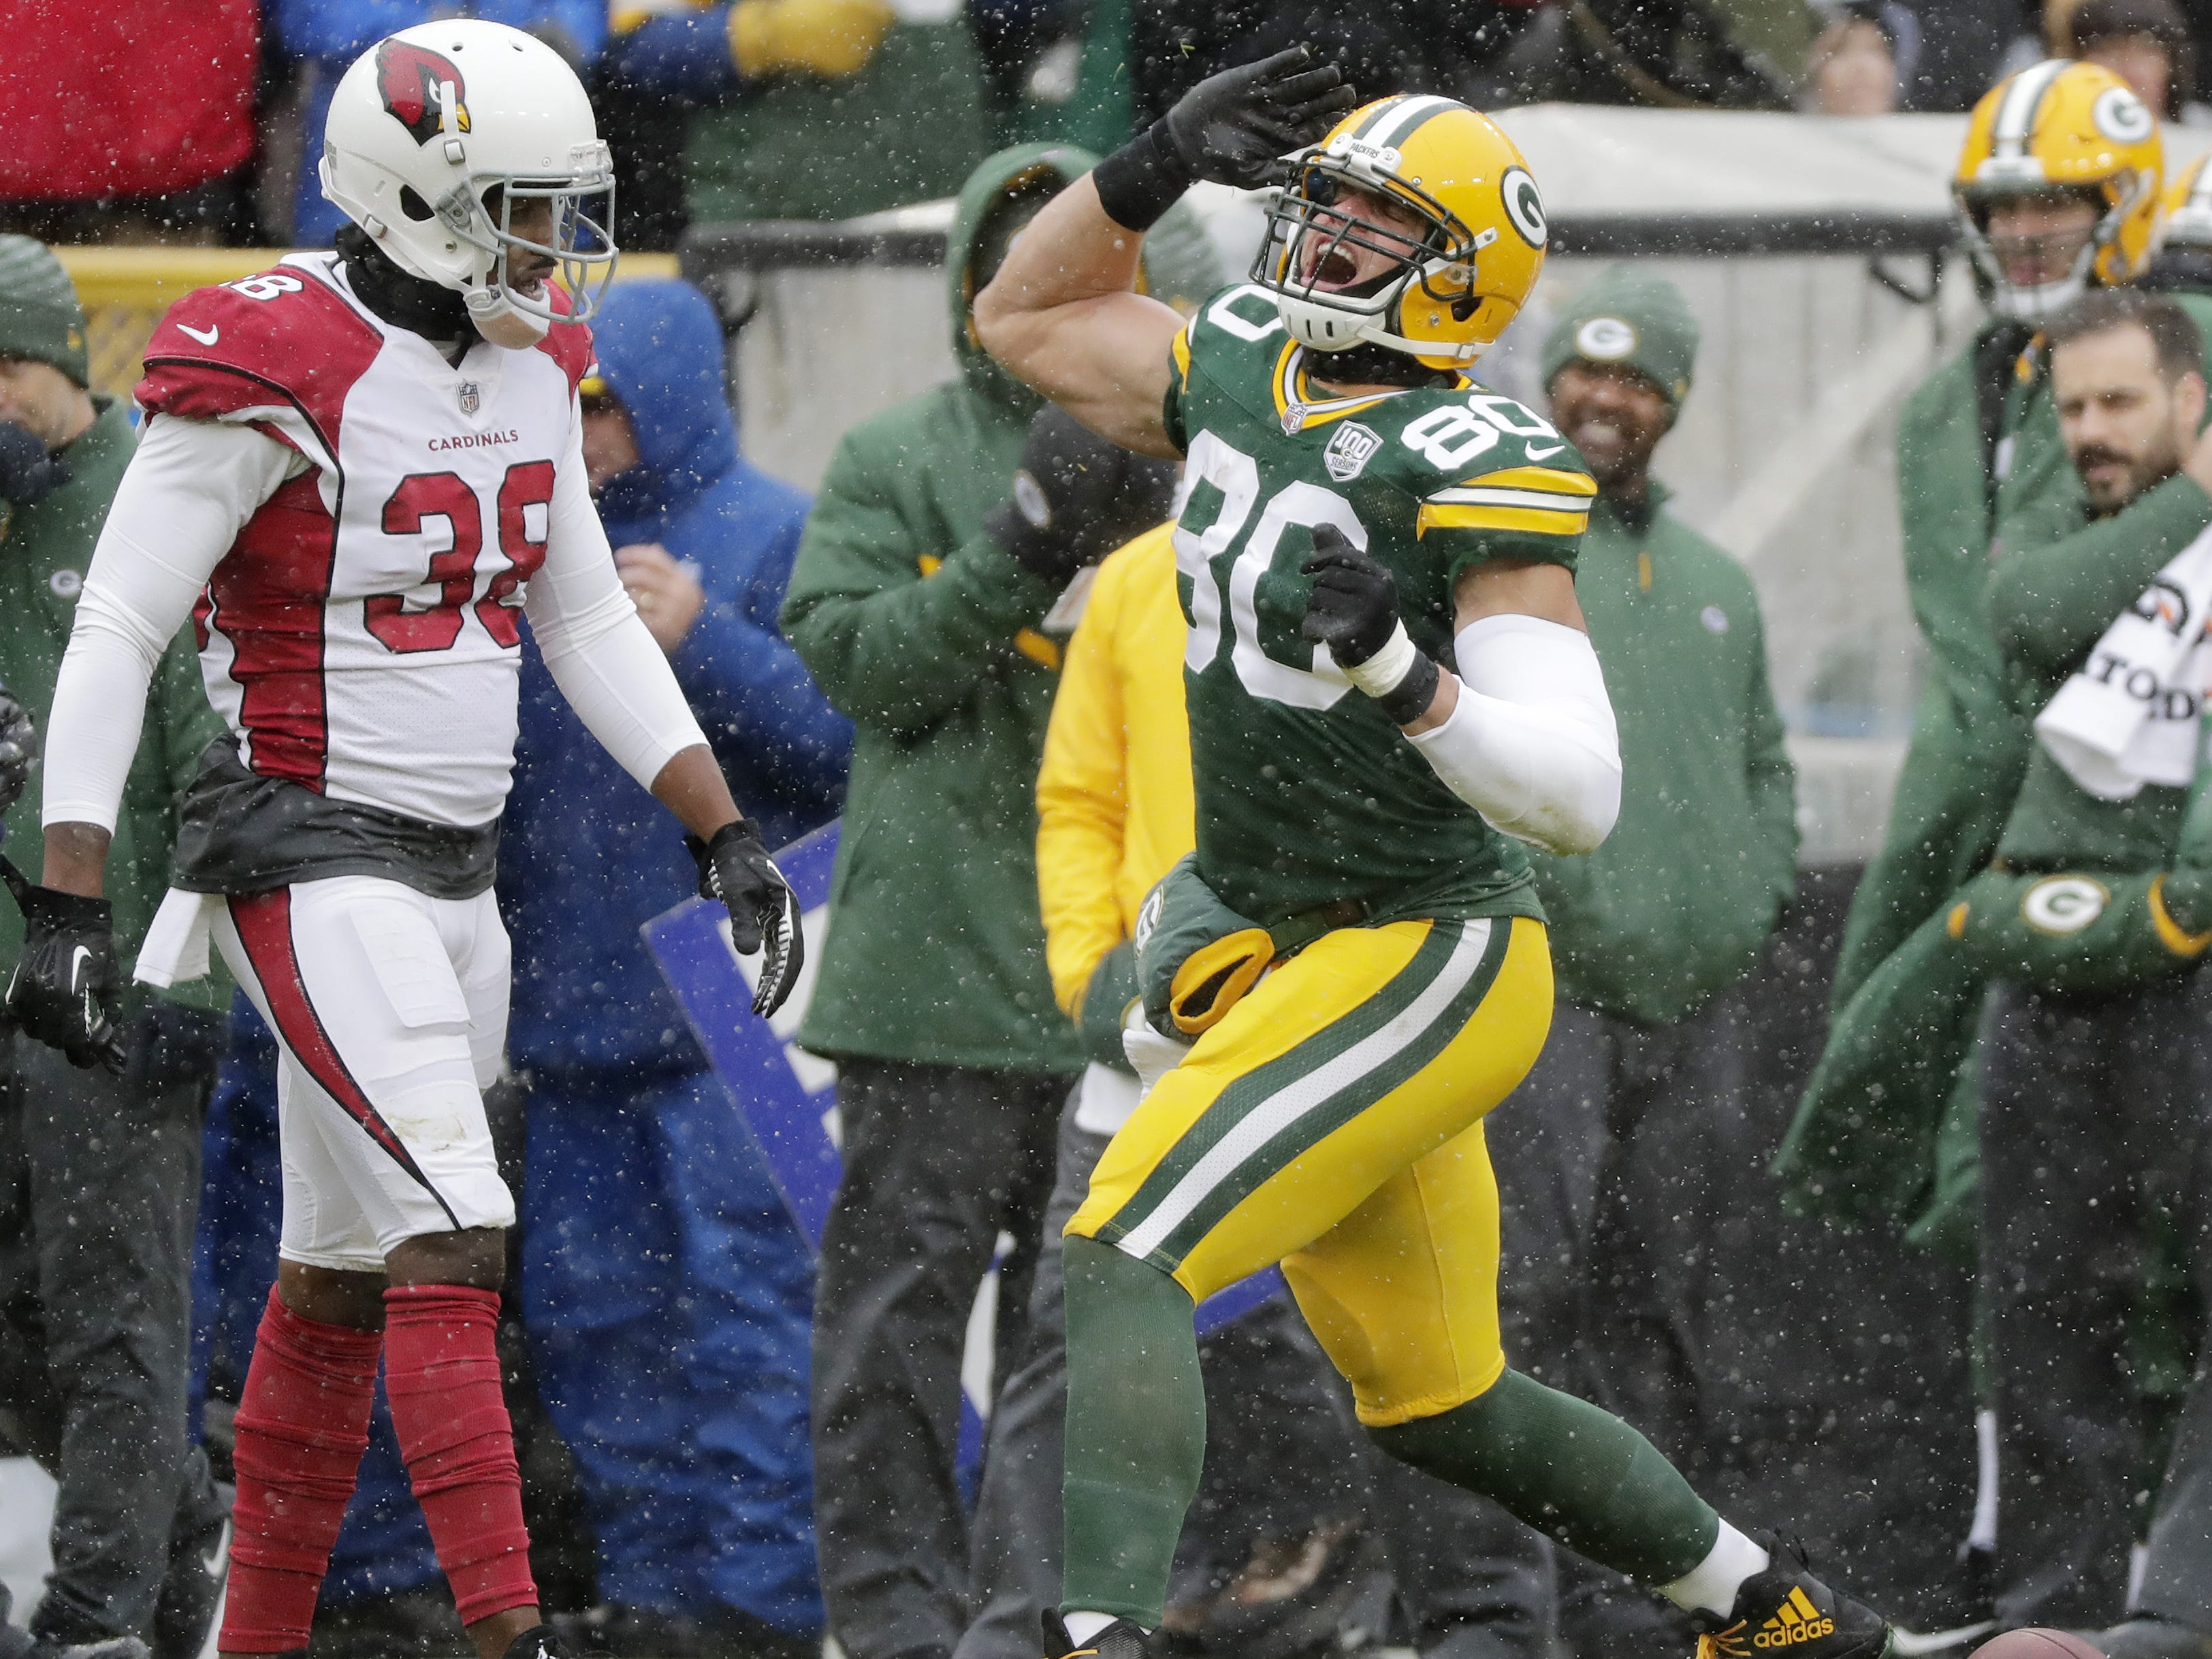 Green Bay Packers tight end Jimmy Graham (80) reacts after a catch for a first down in the first quarter against the Arizona Cardinals at Lambeau Field on Sunday, December 2, 2018 in Green Bay, Wis.